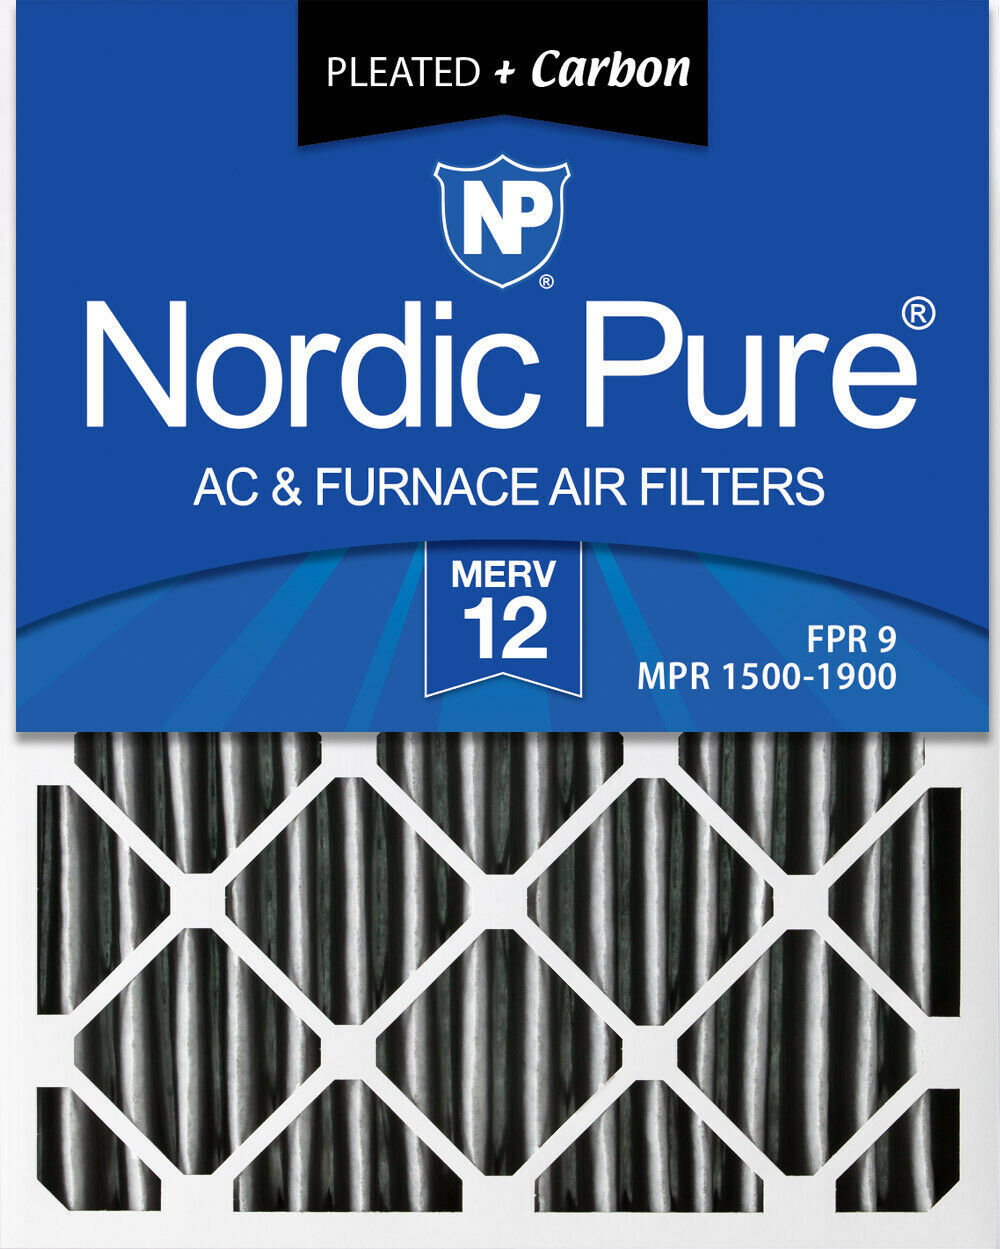 Nordic Pure 18x18x2 MERV 14 Plus Carbon Pleated AC Furnace Air Filters 3 Pack